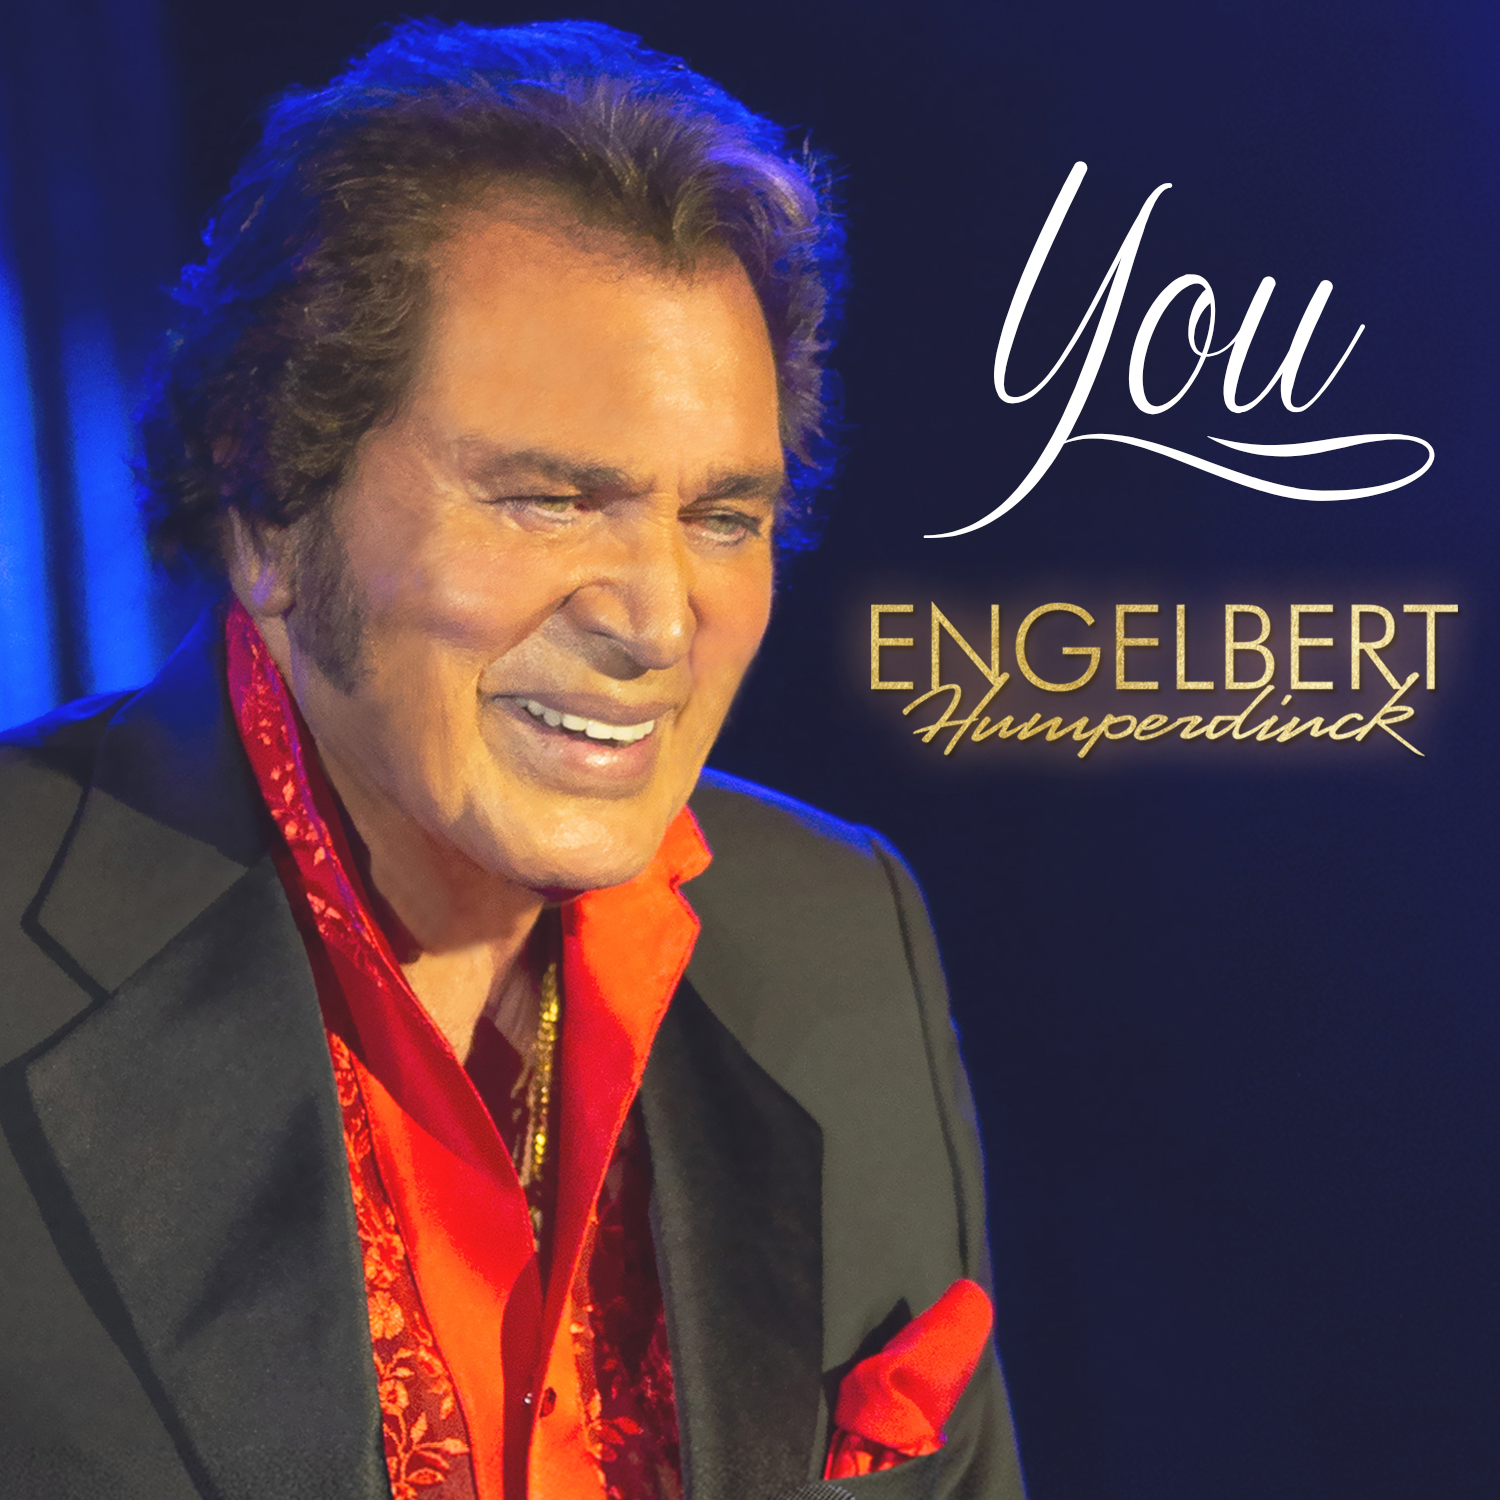 "Engelbert Humperdinck Surprises Moms Everywhere with Special Mother's Day Song, ""You"" and Video Message"